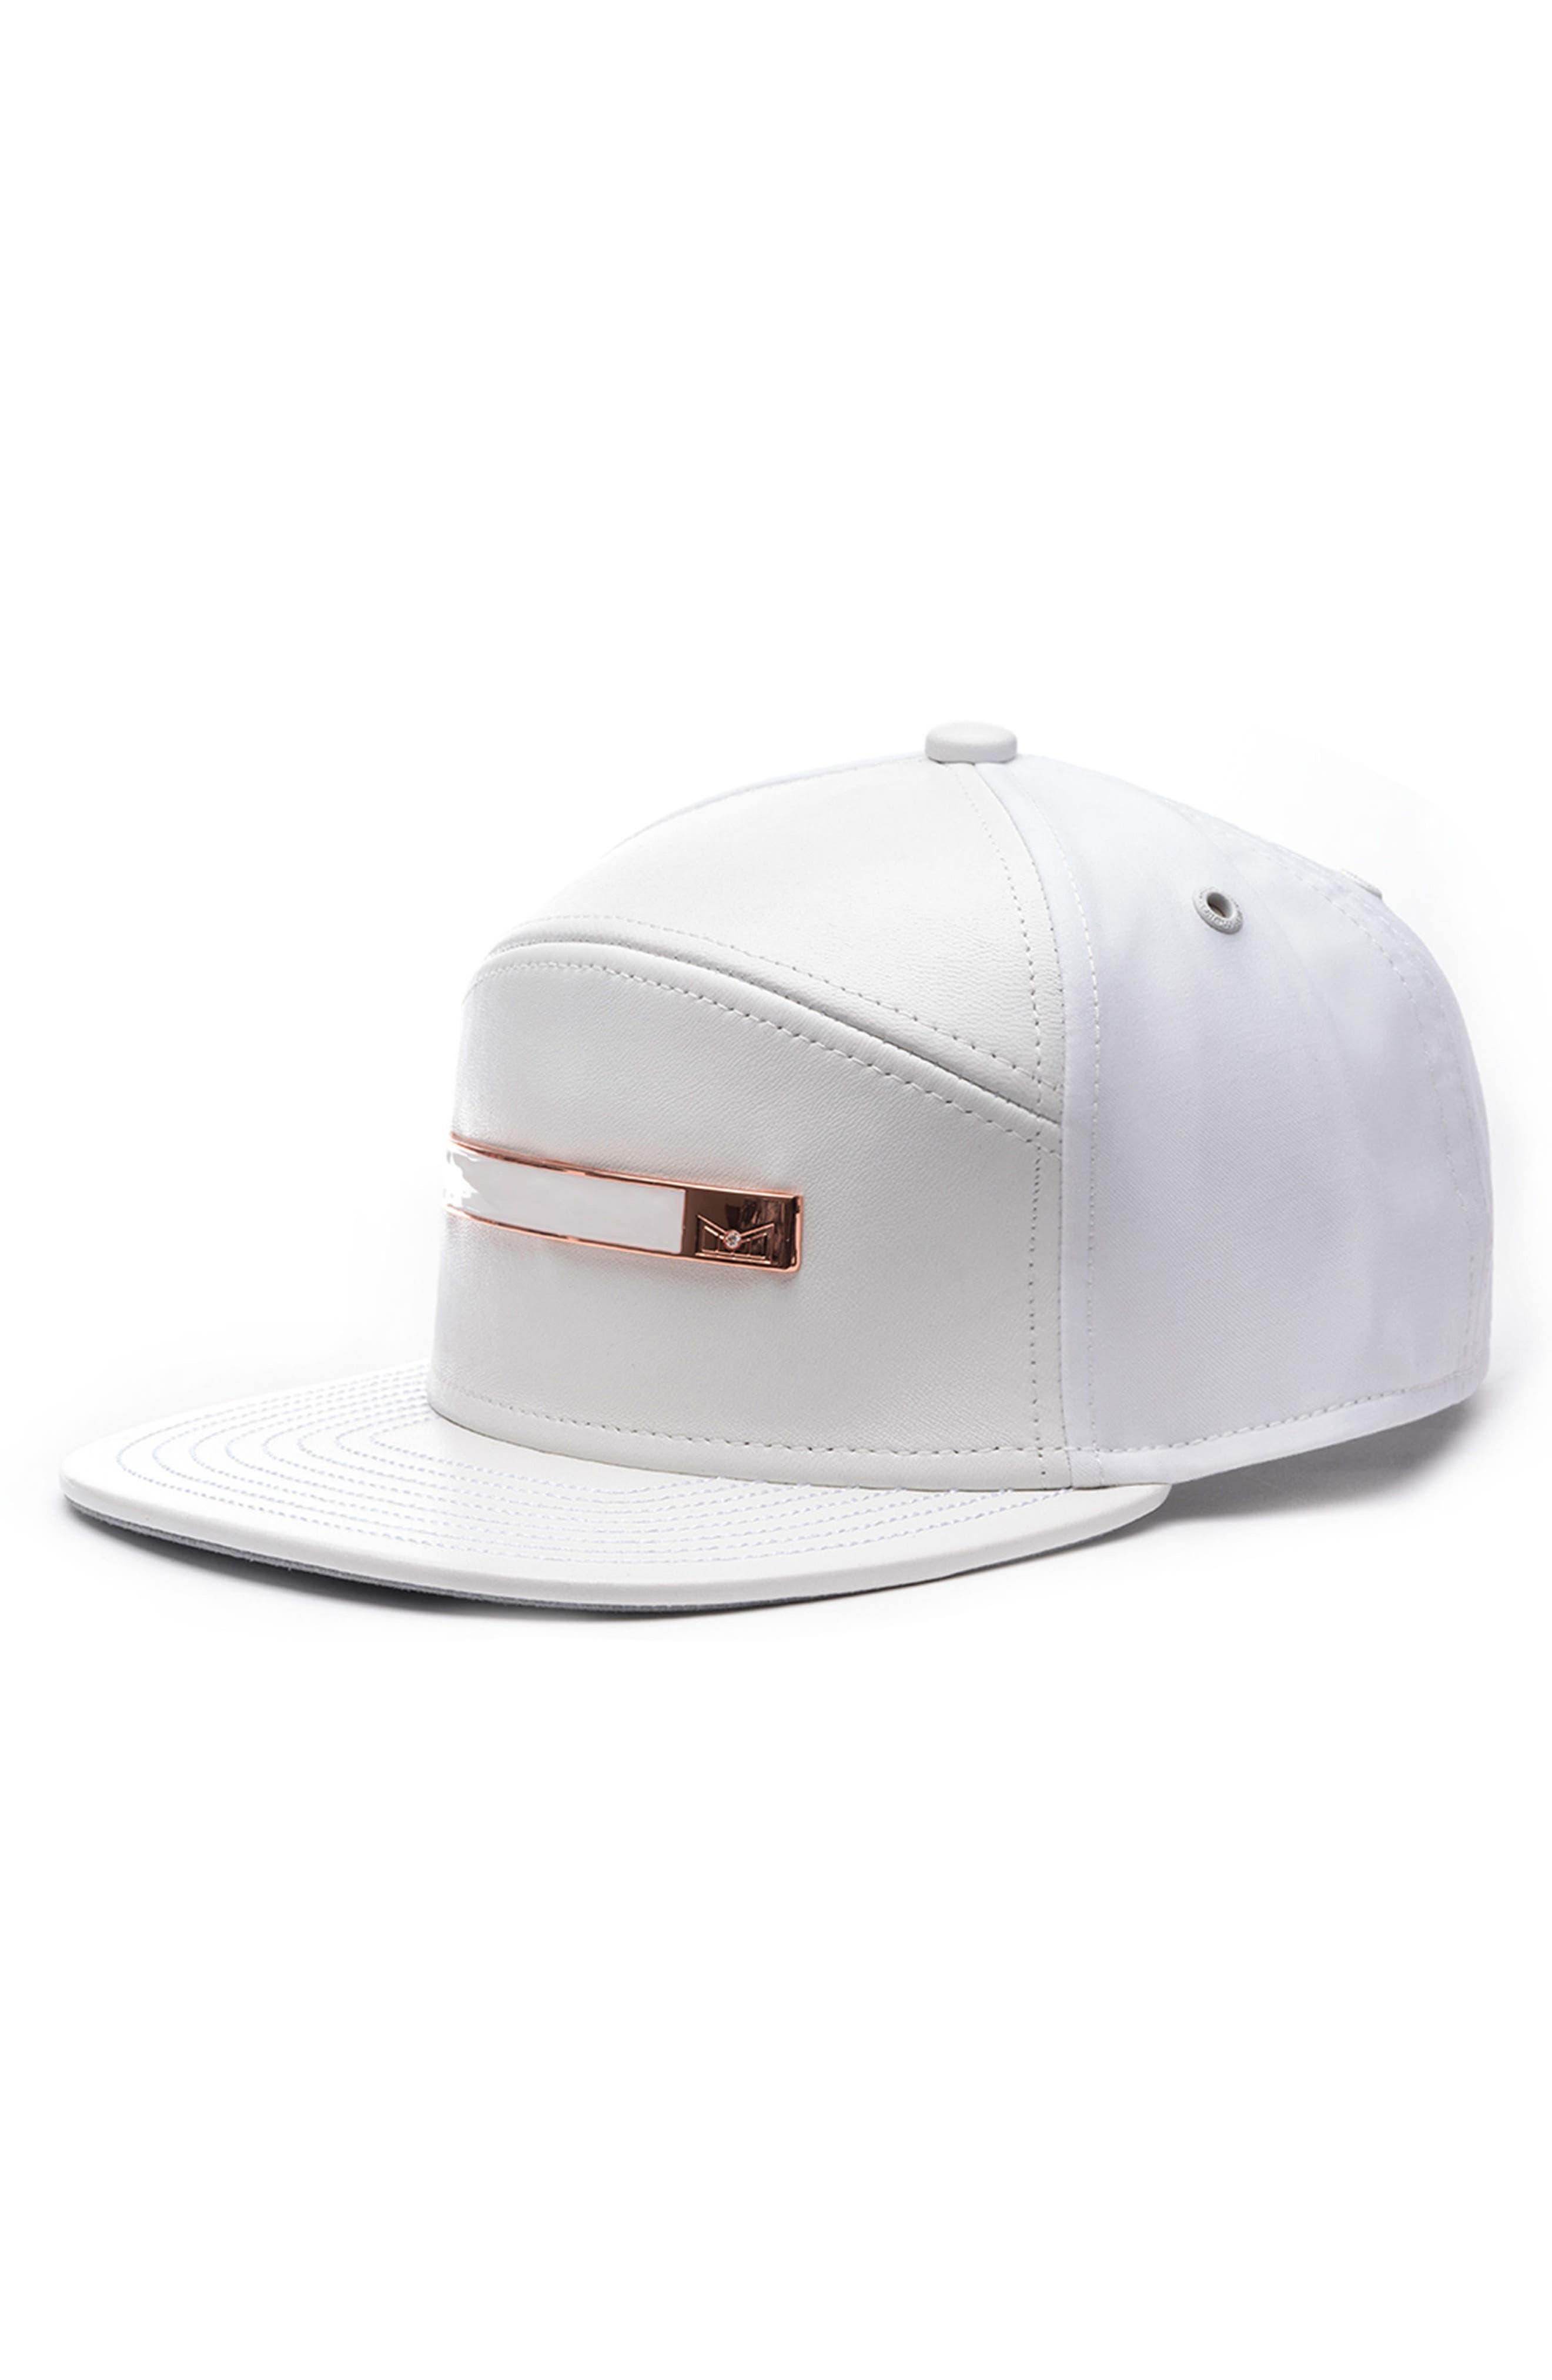 Dynasty V Limited Edition Leather, Cashmere, Wool & Diamond Cap,                         Main,                         color, 101